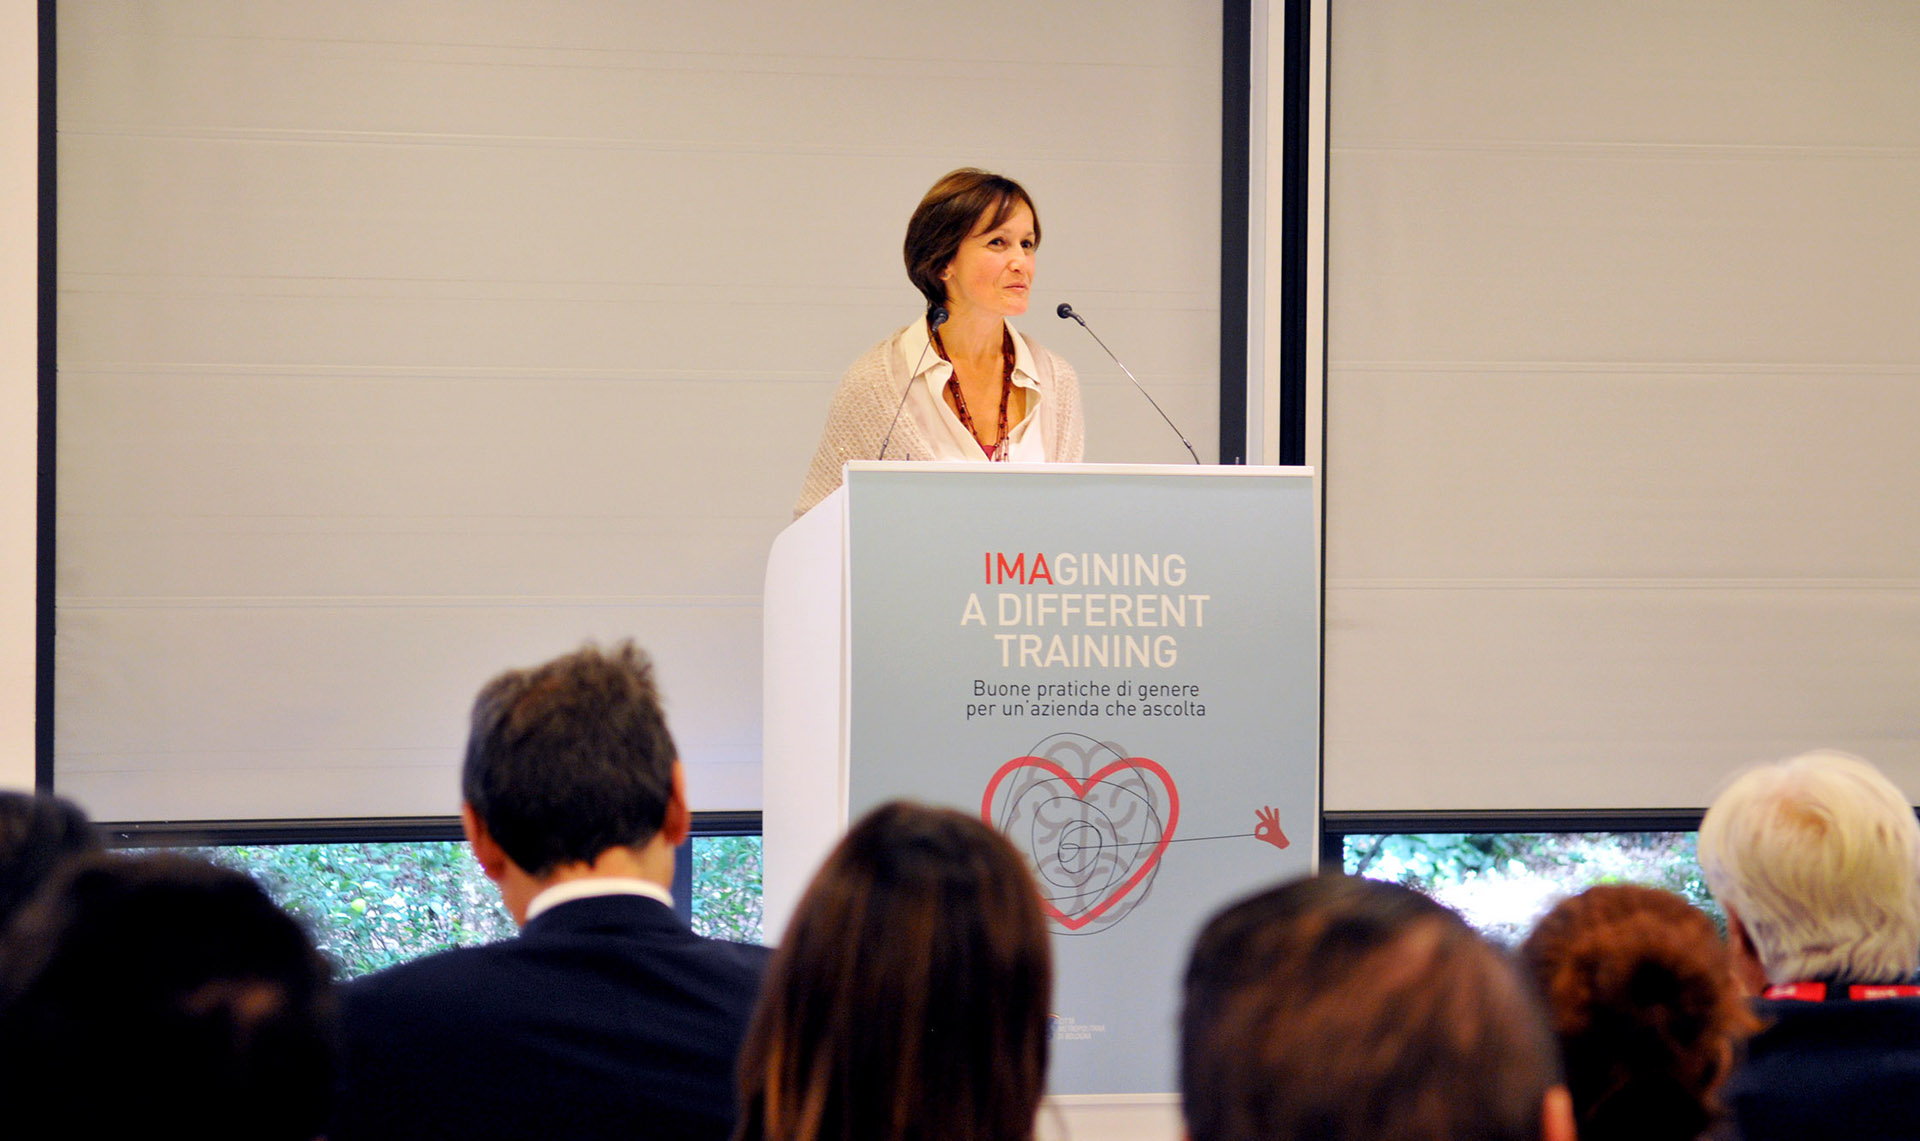 Lara Borgo, Country Talent Management Director, ALSTOM